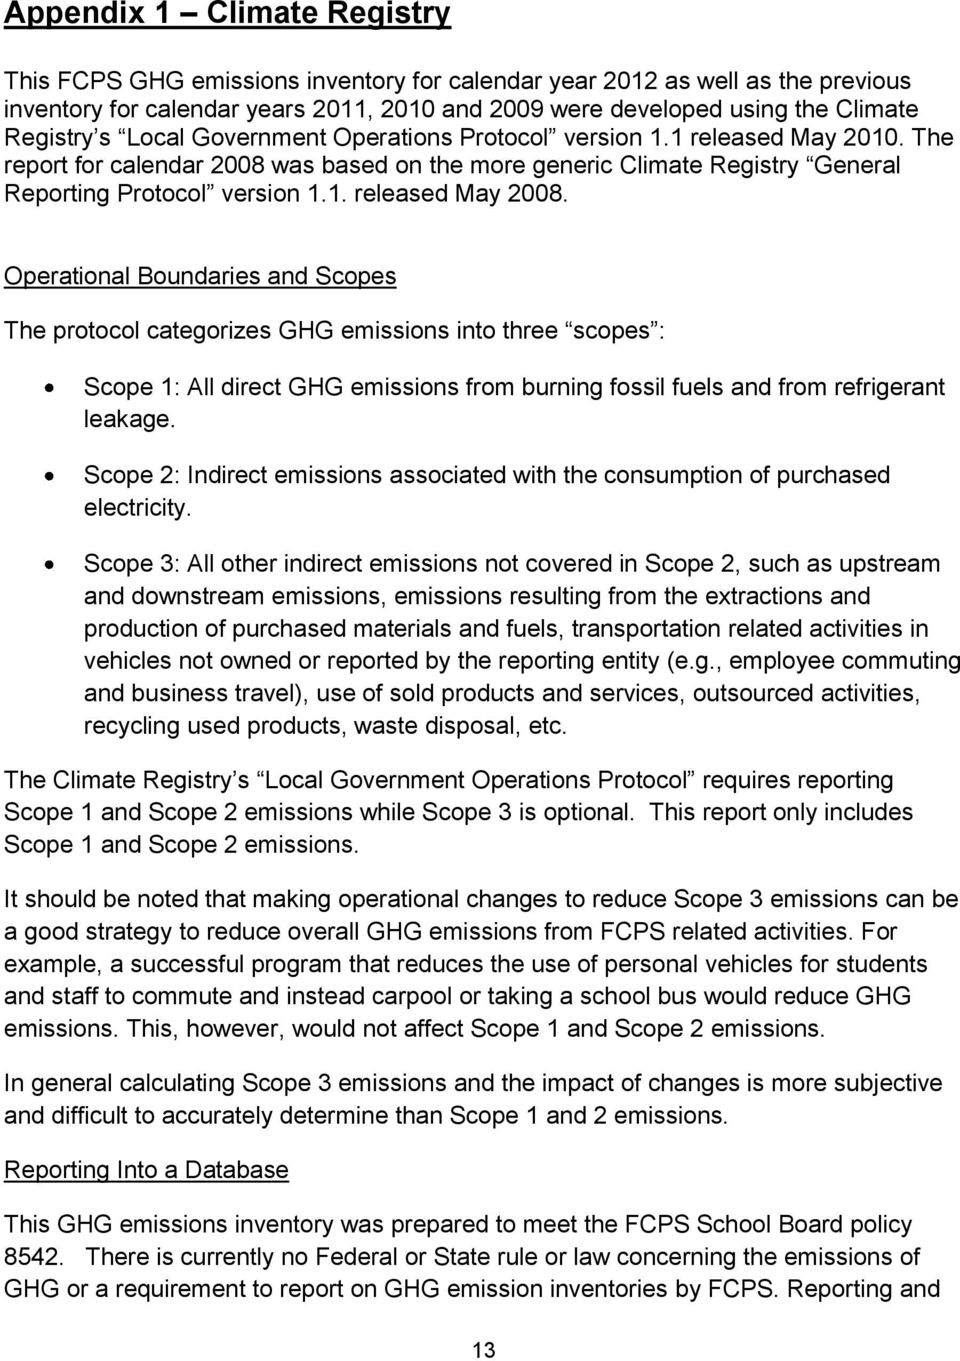 Operational Boundaries and Scopes The protocol categorizes GHG emissions into three scopes : Scope 1: All direct GHG emissions from burning fossil fuels and from refrigerant leakage.